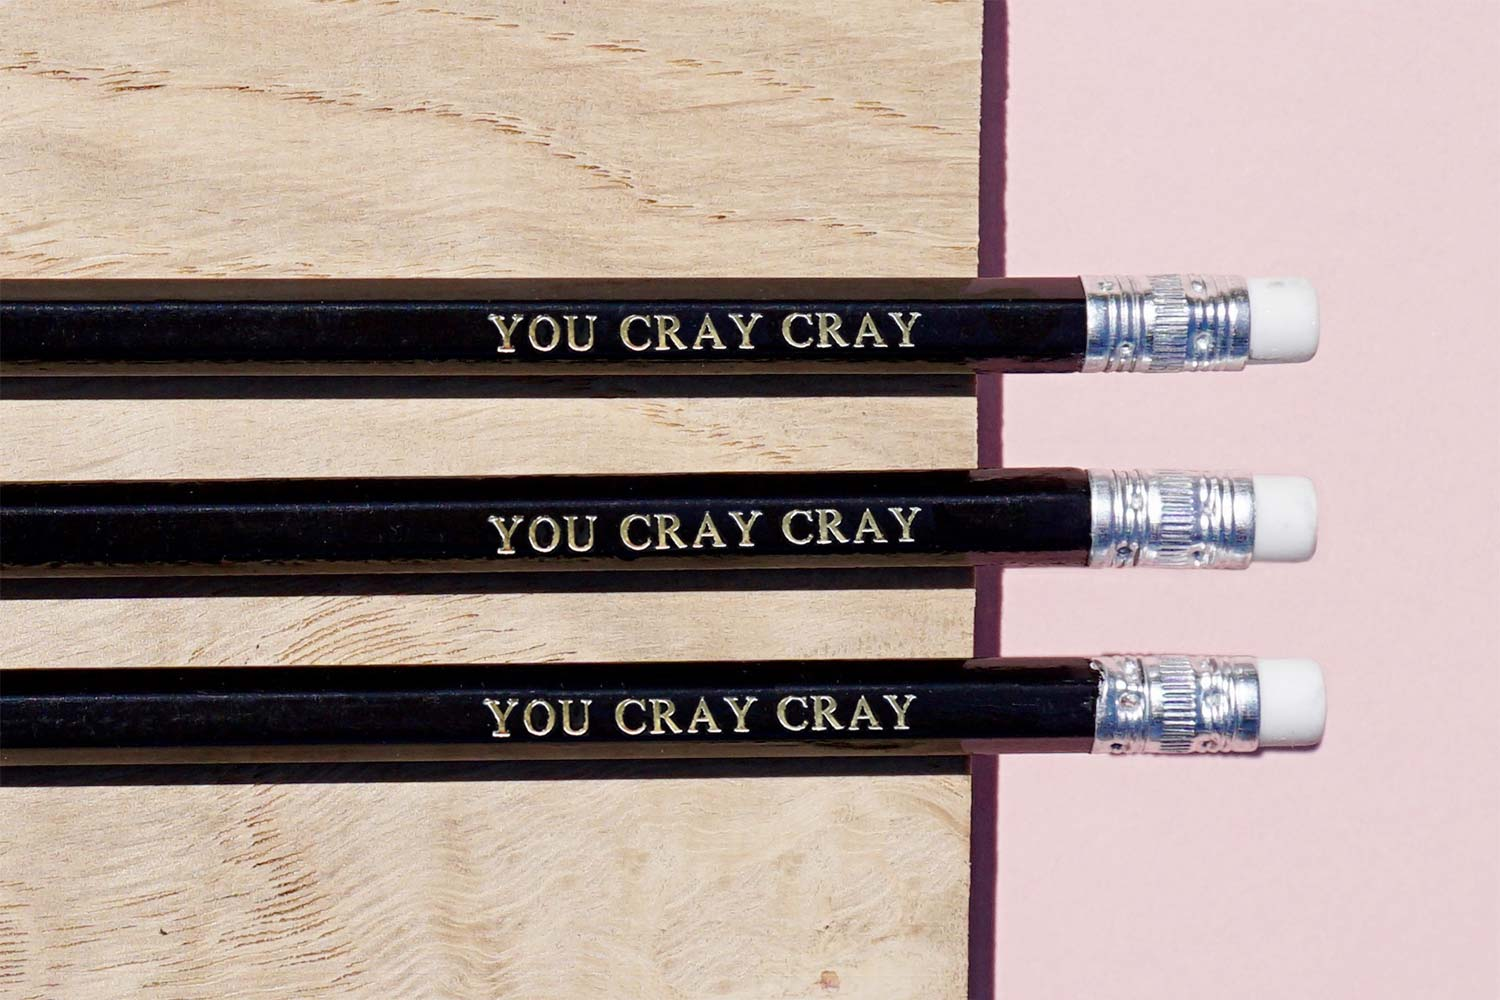 Custom pencils from Bookshell, 'You cray cray'